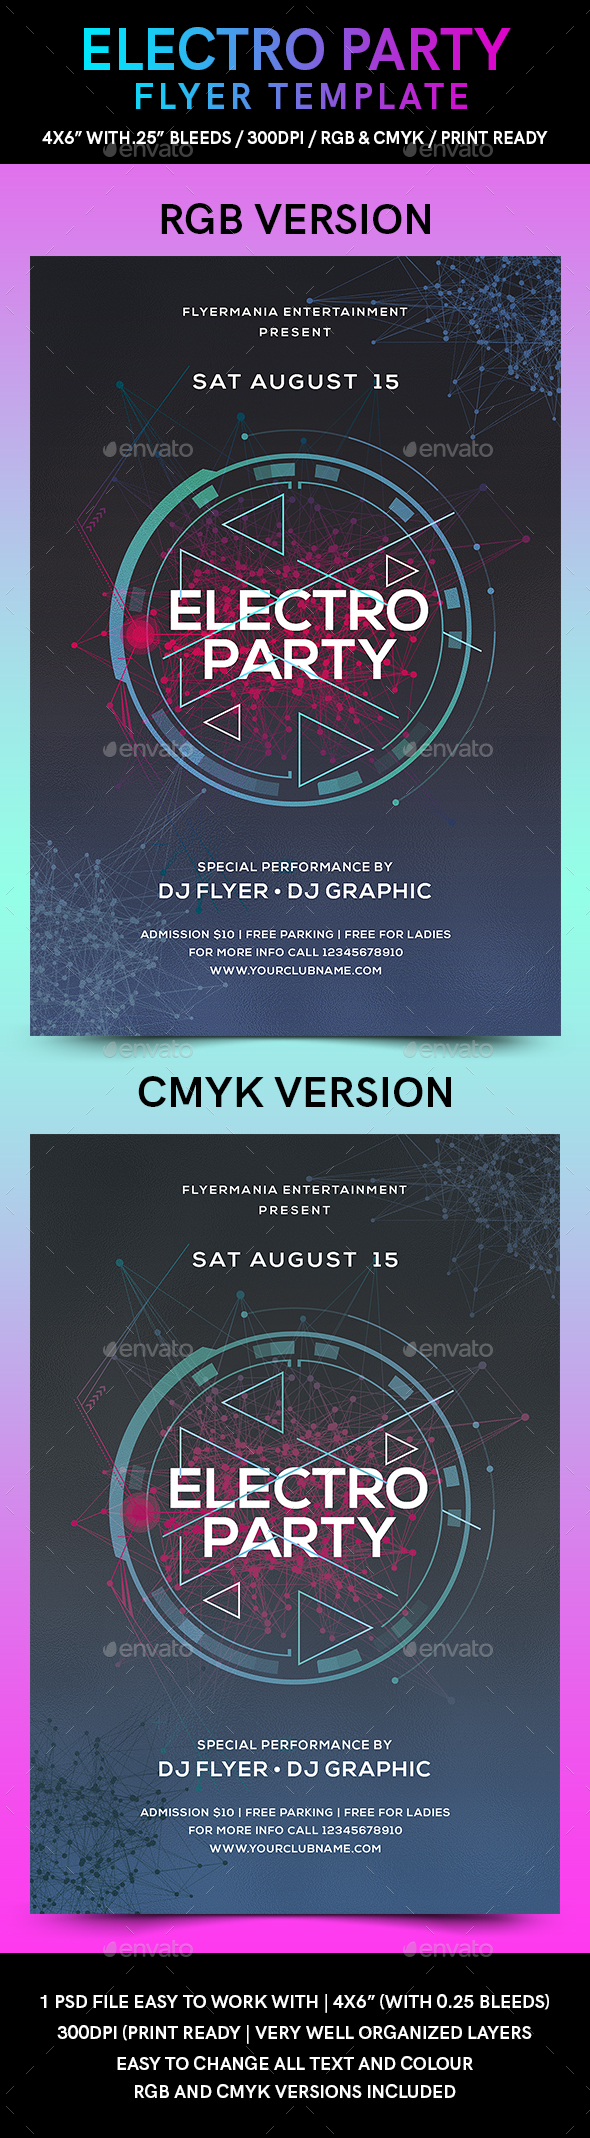 Electro Party Flyer Template - Flyers Print Templates